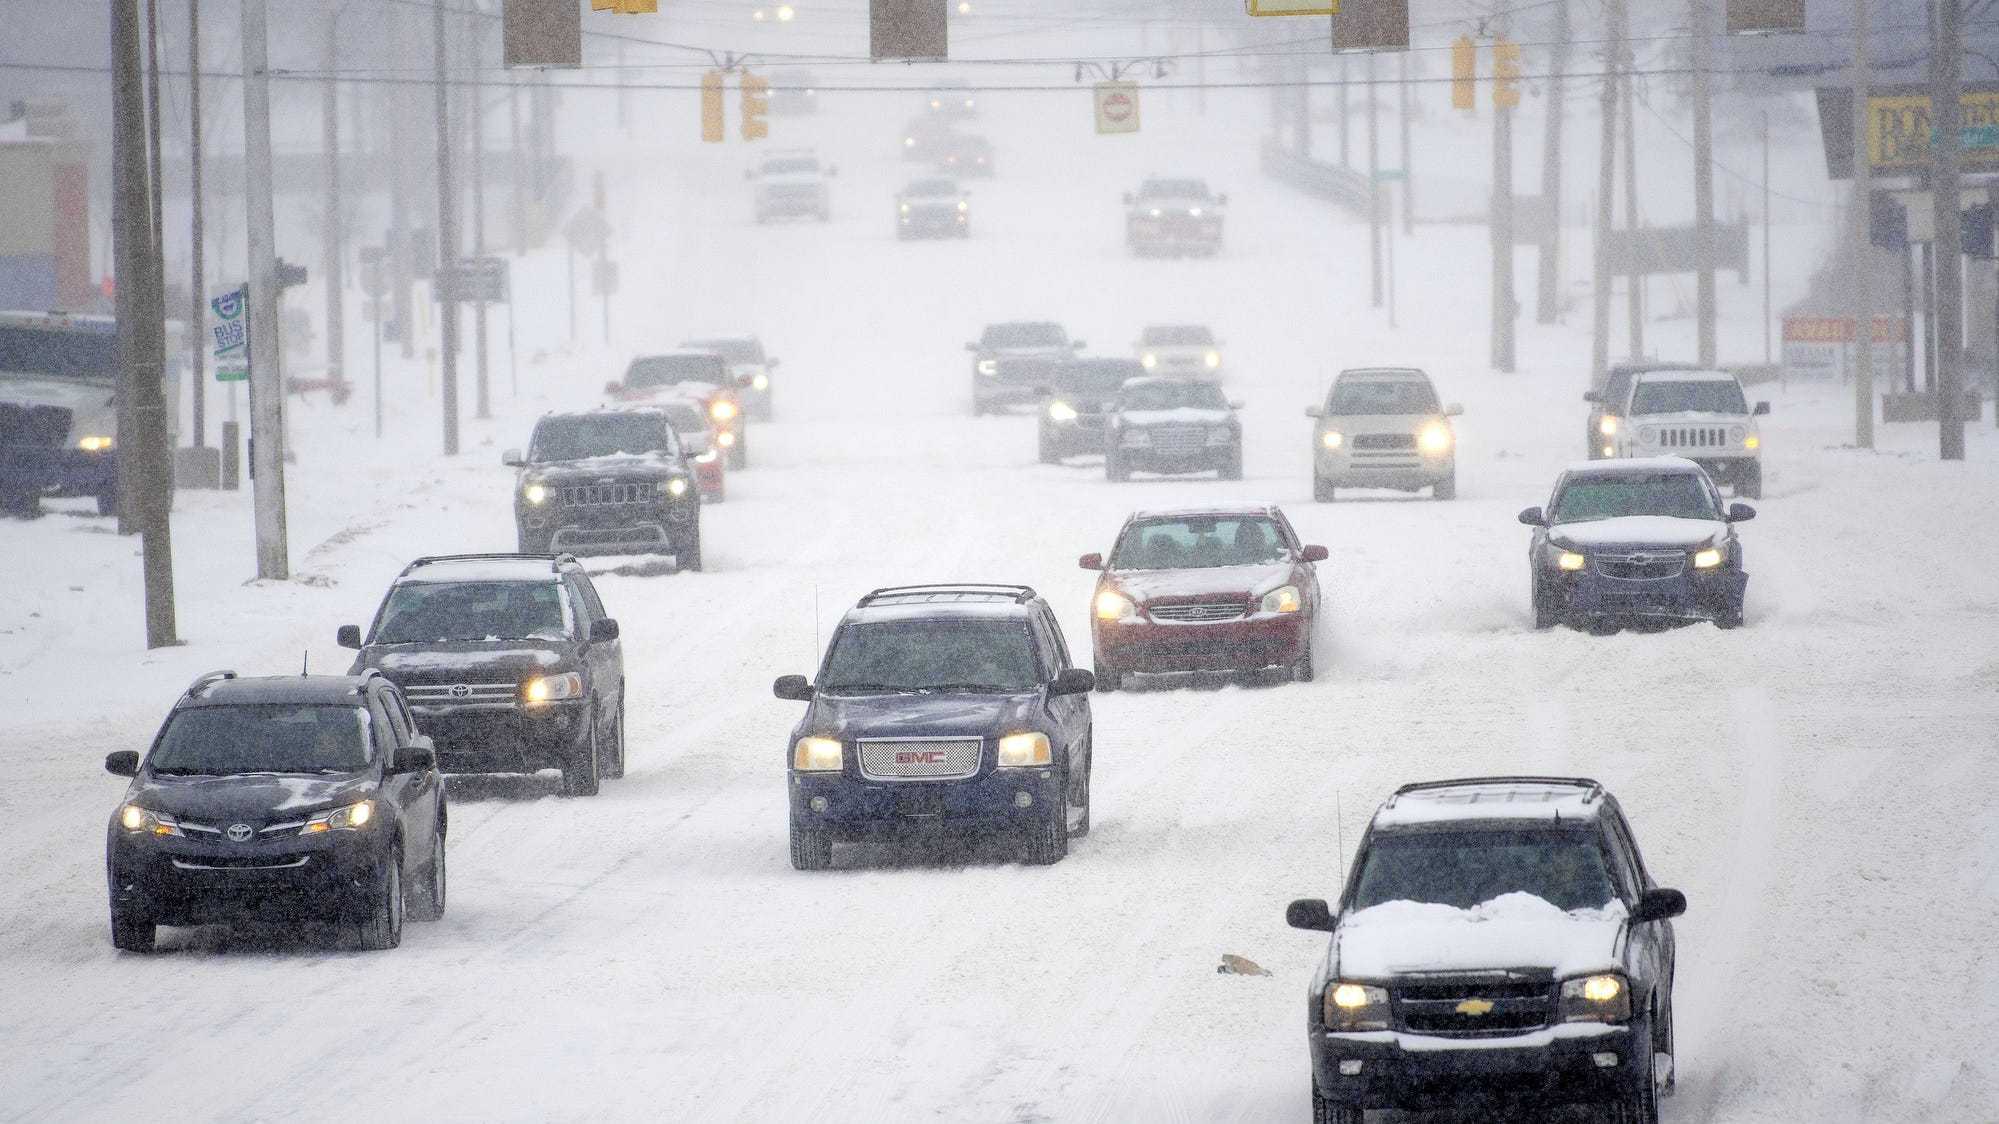 Lansing lifts travel restrictions, will delay sidewalk enforcement due to dangerous cold